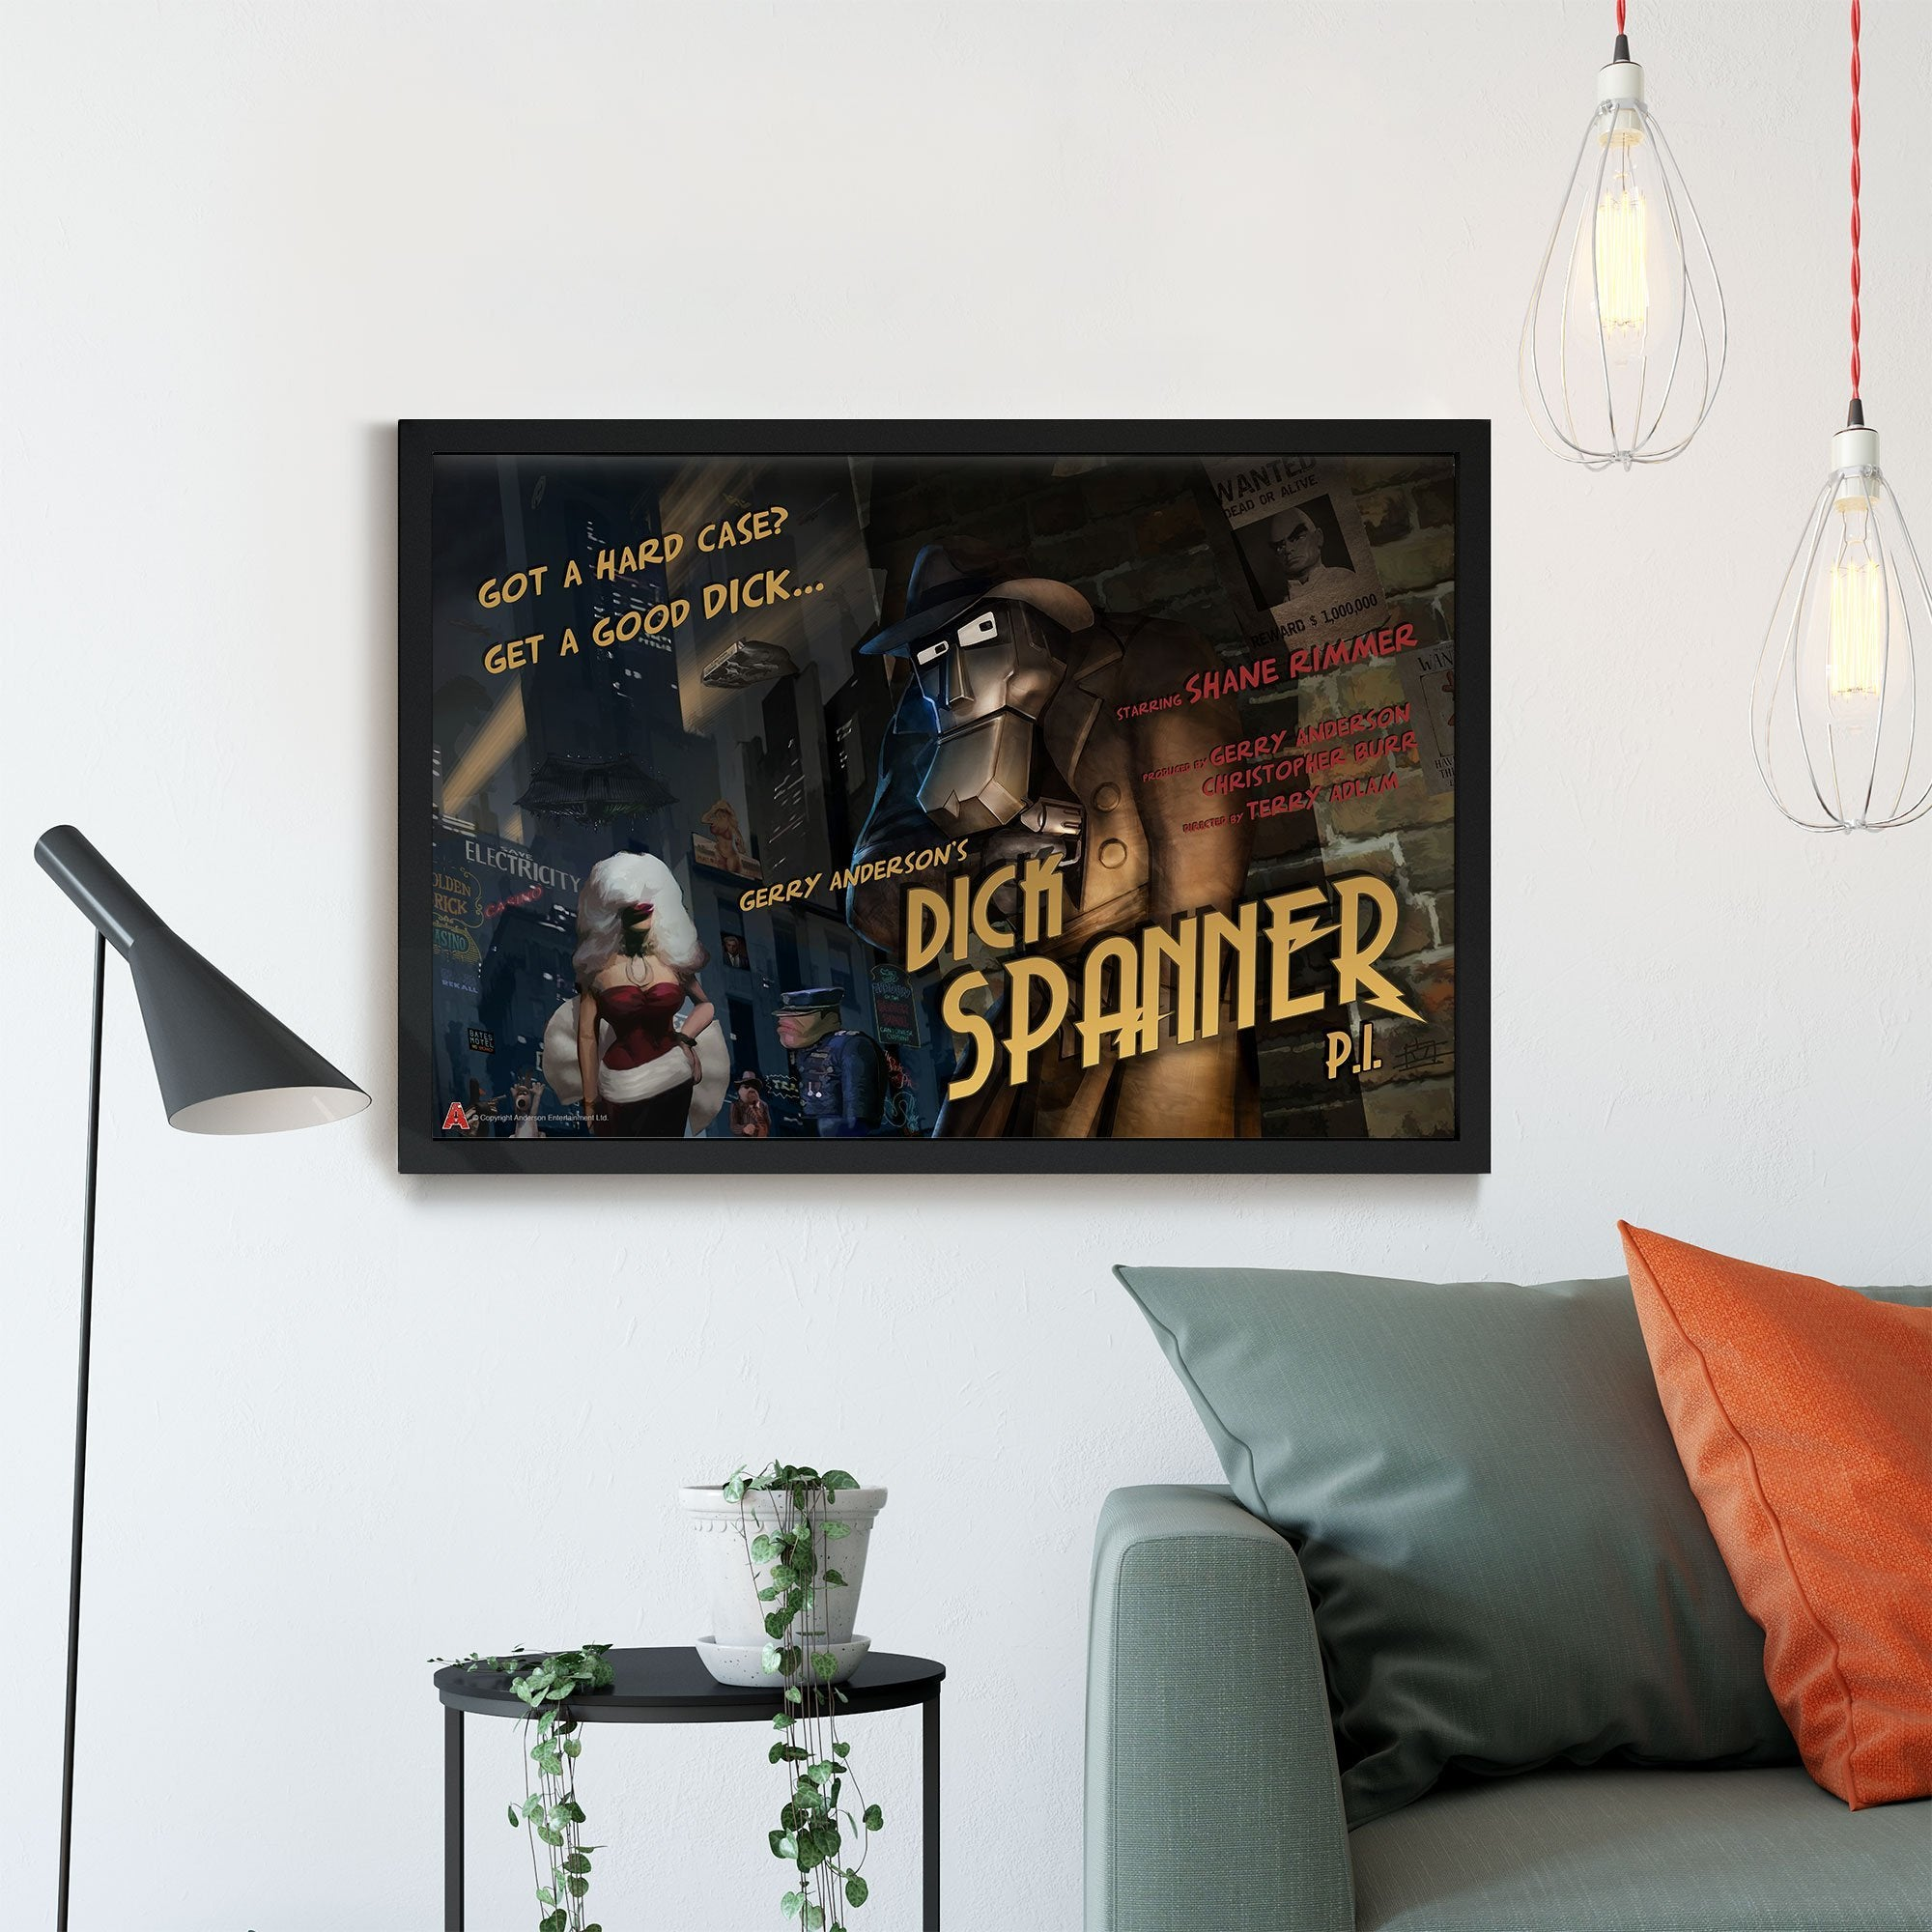 Dick Spanner Framed Print [Official and Exclusive] - The Gerry Anderson Store